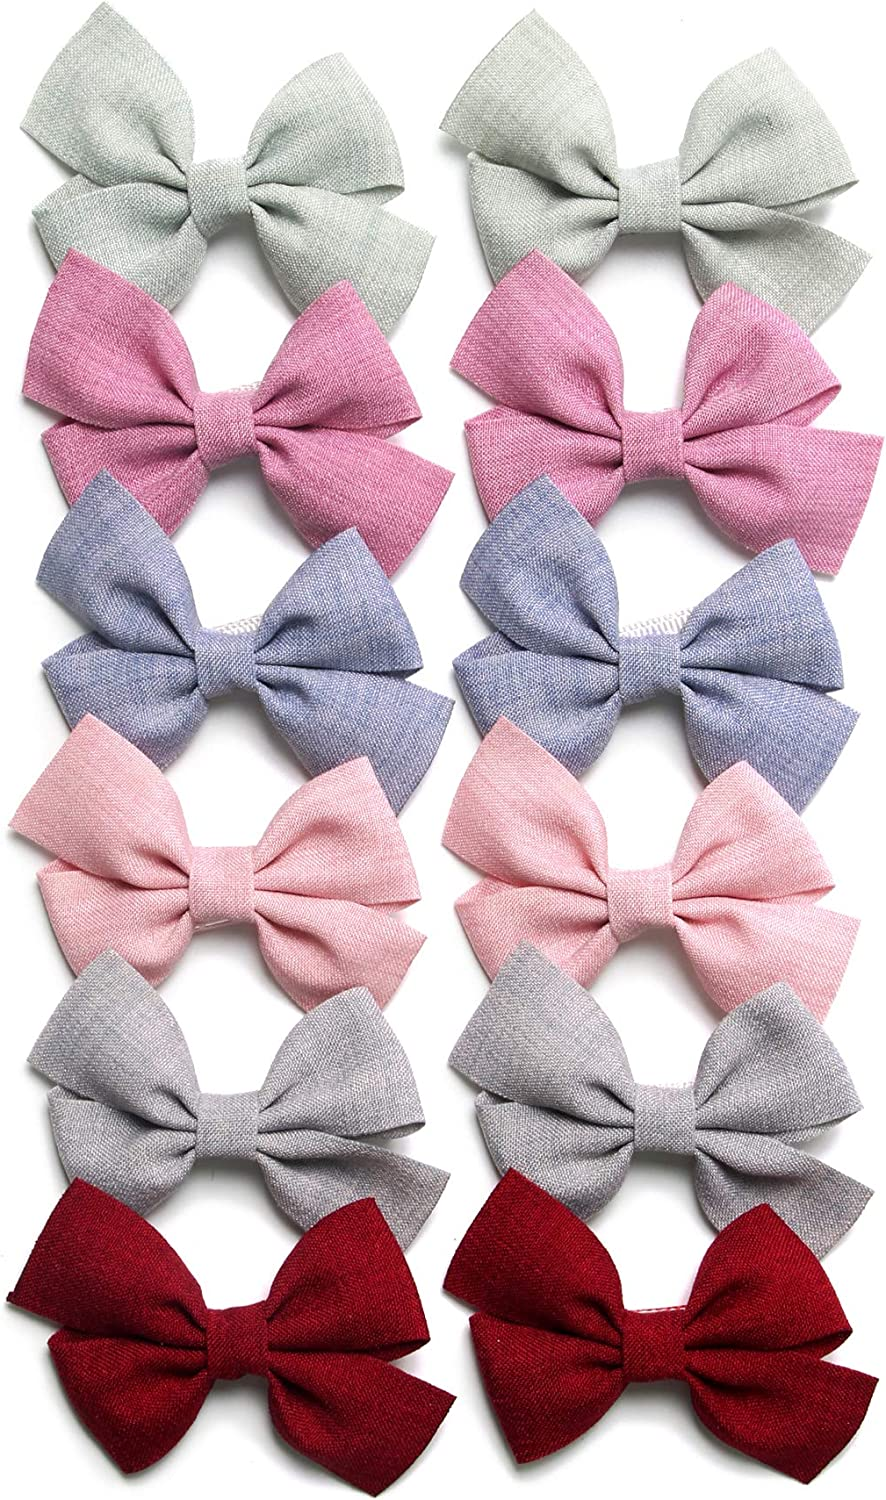 Baby Girls' Hair Bow Clips It is very popular Fully Sale SALE% OFF Ribbon Lined Barrettes A